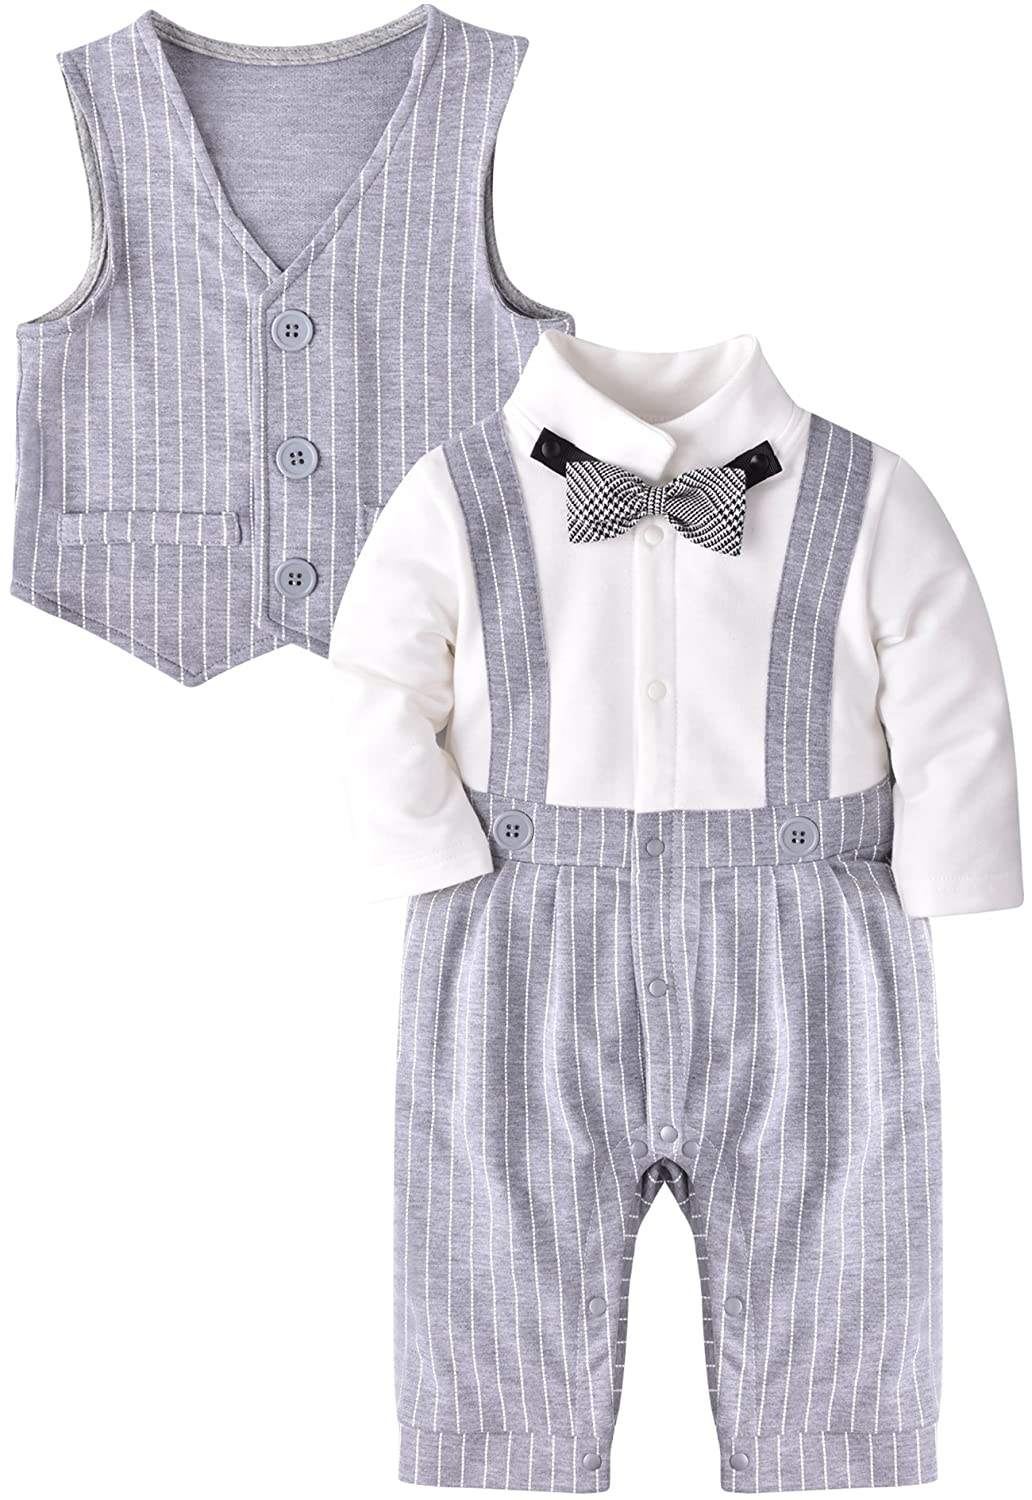 ZOEREA Baby Boy Gentleman Rompers Striped Toddler Suit 2pcs Outfit Wedding YS1491